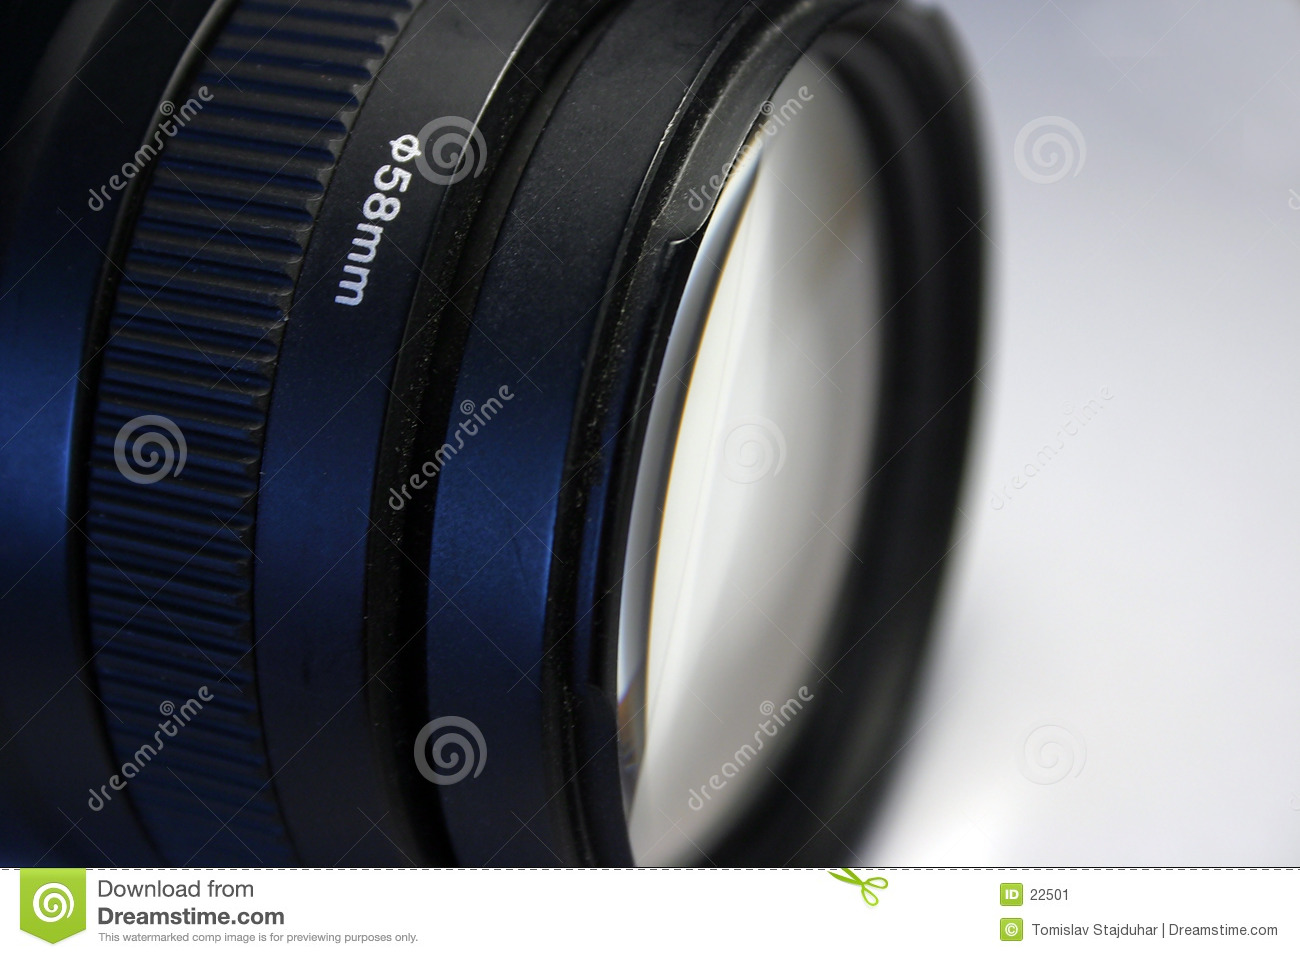 58mm Canon telephoto lens